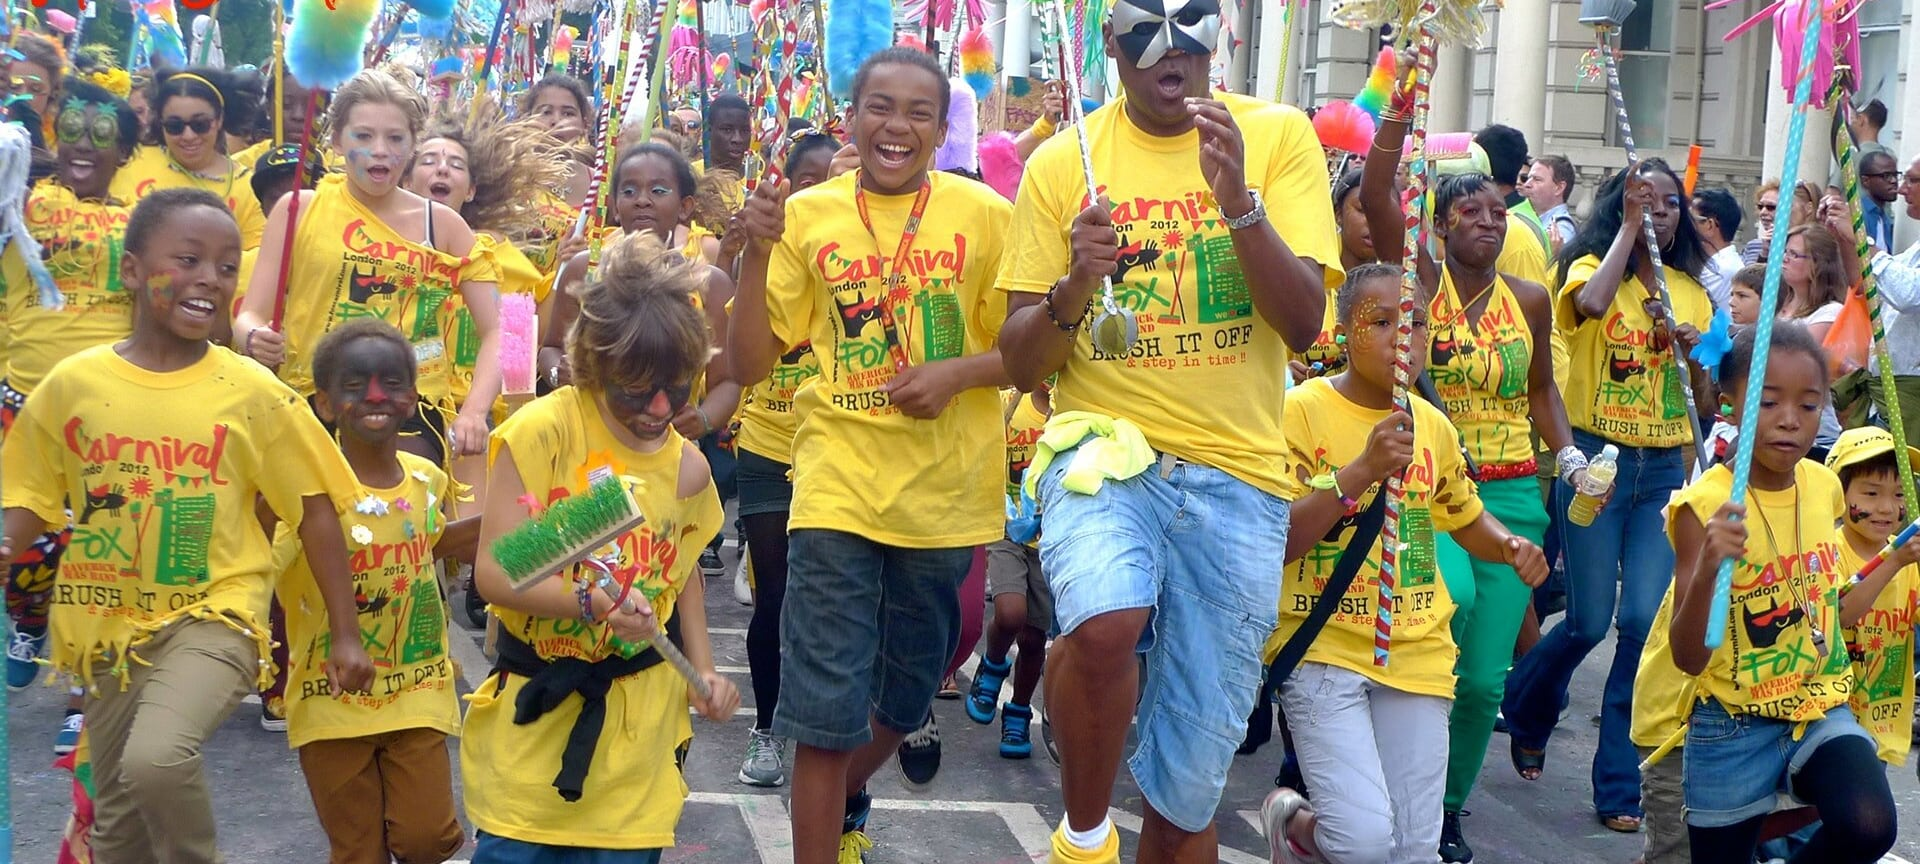 Sunday is the day of the children's parade. The parade starts at 9am and marks the beginning of the carnival parades. It is perfect for all those who want to enjoy the street party in a less busy environment. Sunday is also the day when the costume prizes are awarded.